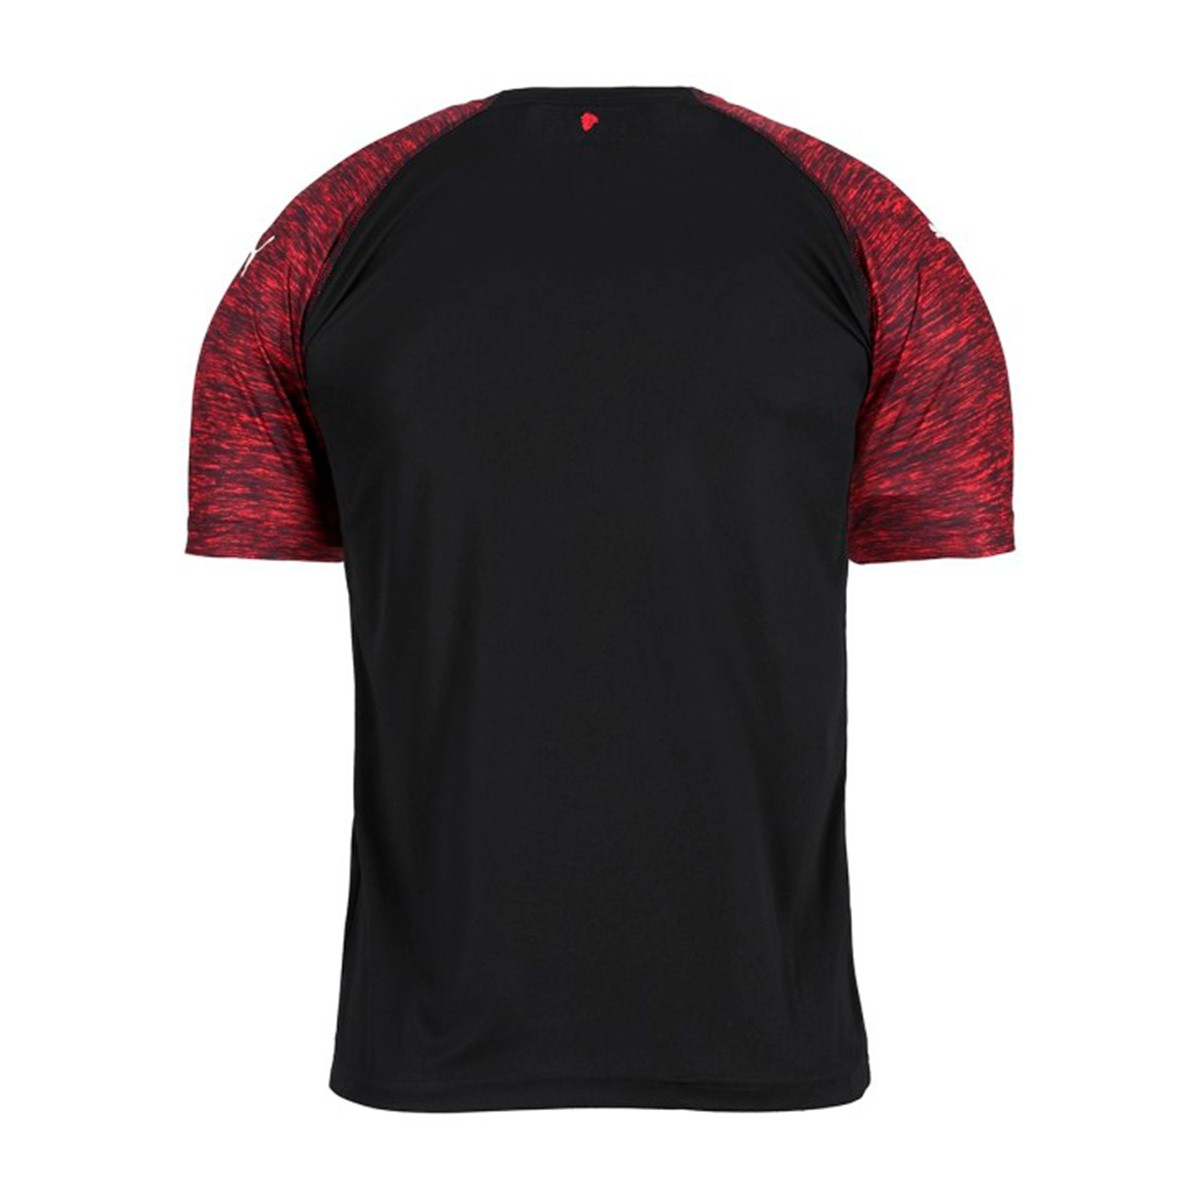 d96d0afb1eb51 Jersey Puma AC Milan 2018-2019 Third Puma black-Chili pepper ...